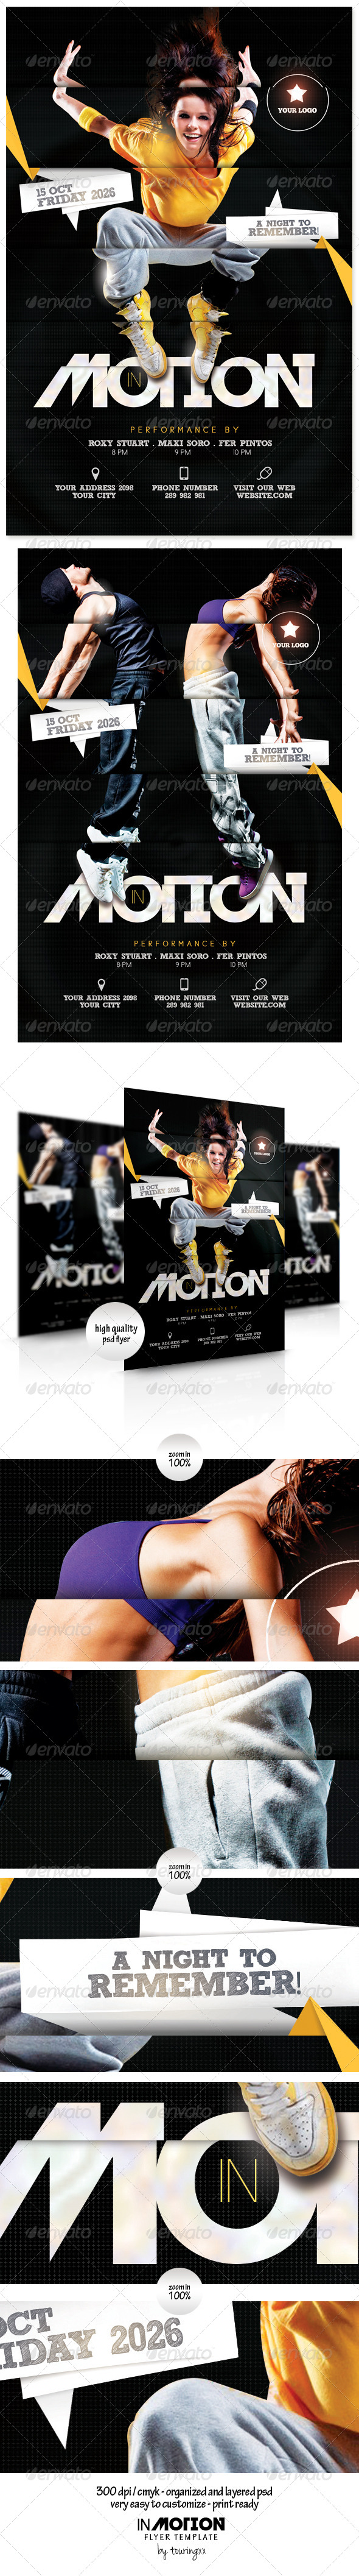 In Motion Flyer Template - Events Flyers